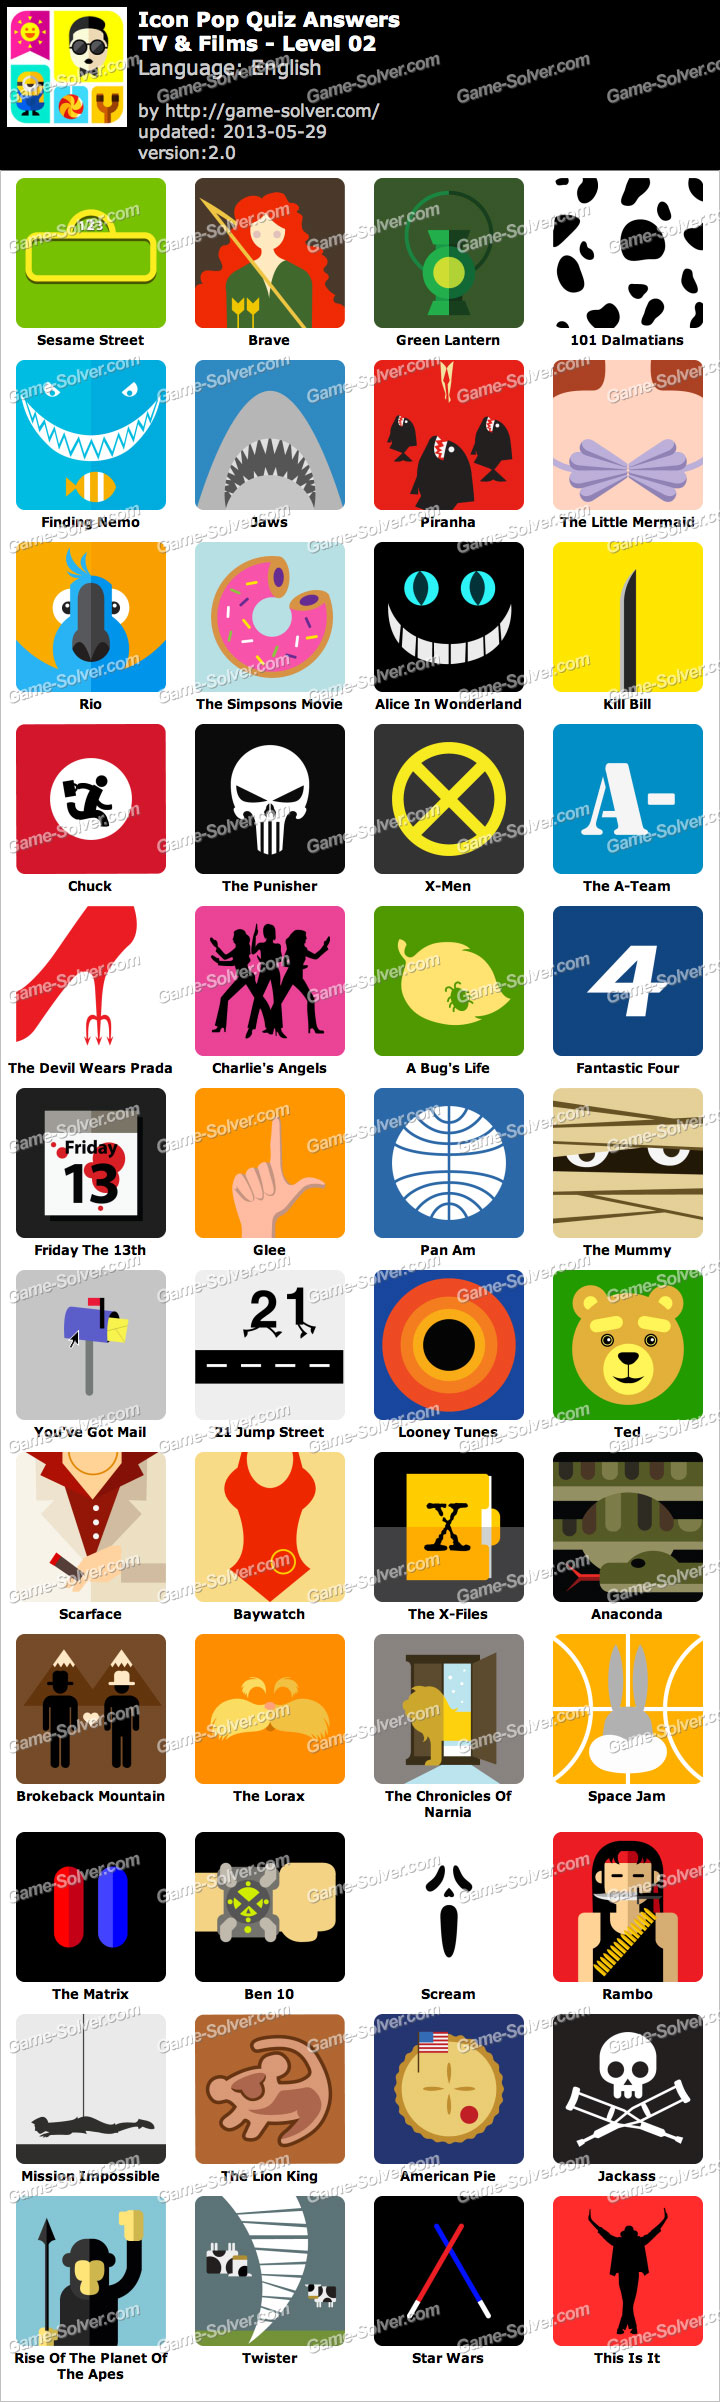 Icon Pop Quiz TV and Films Level 2